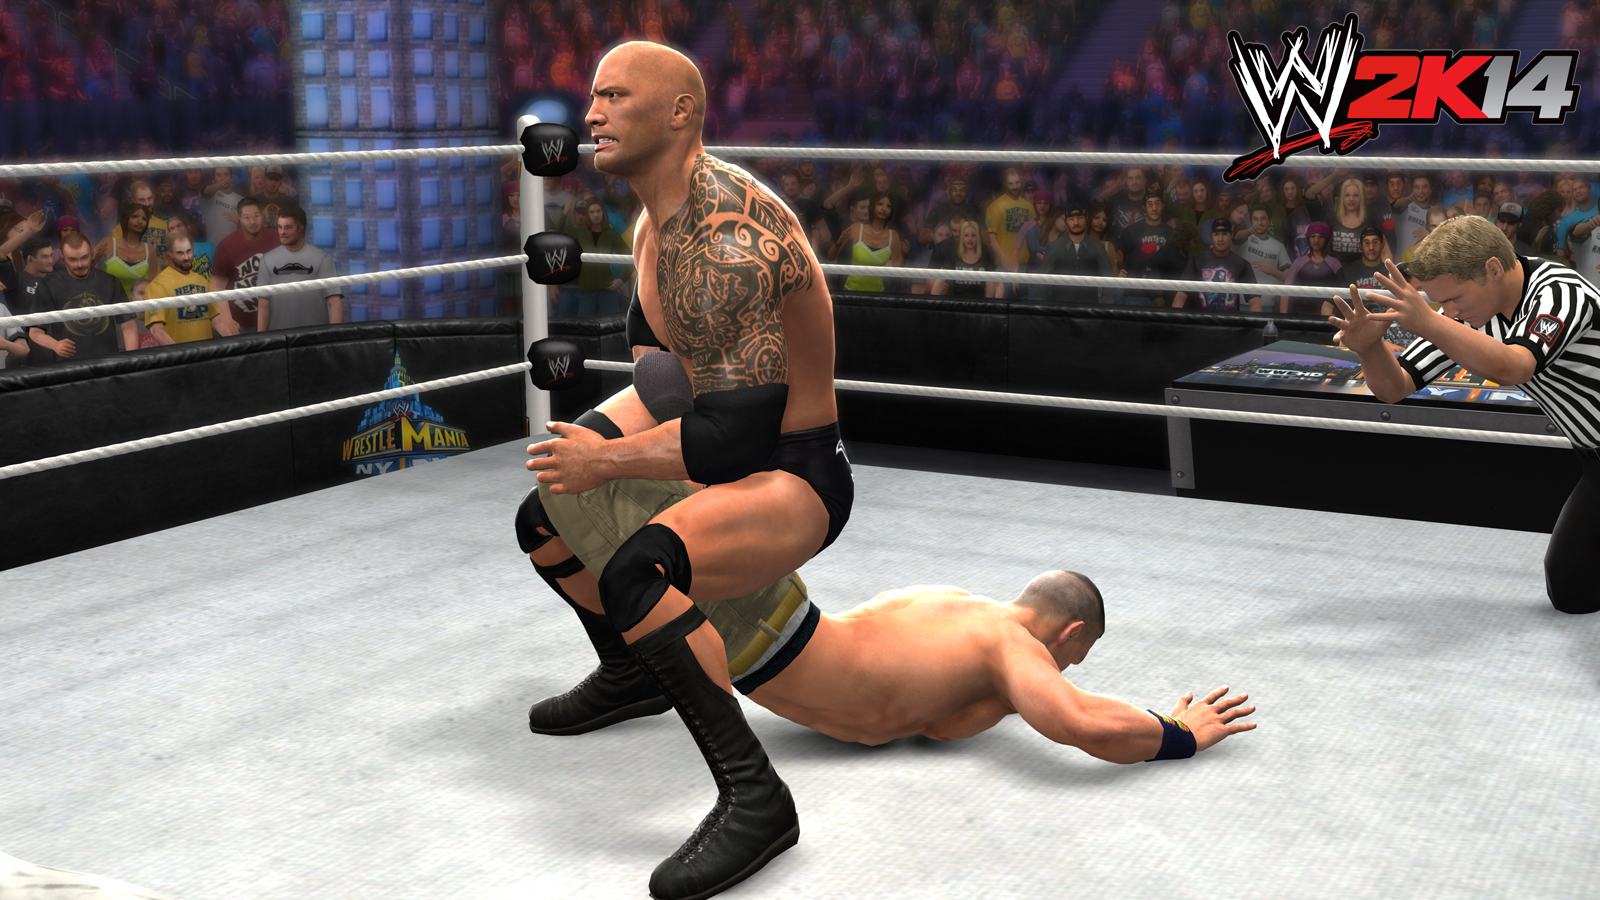 wwe 2k14 review – xbox 360 (also on playstation 3) : gametactics